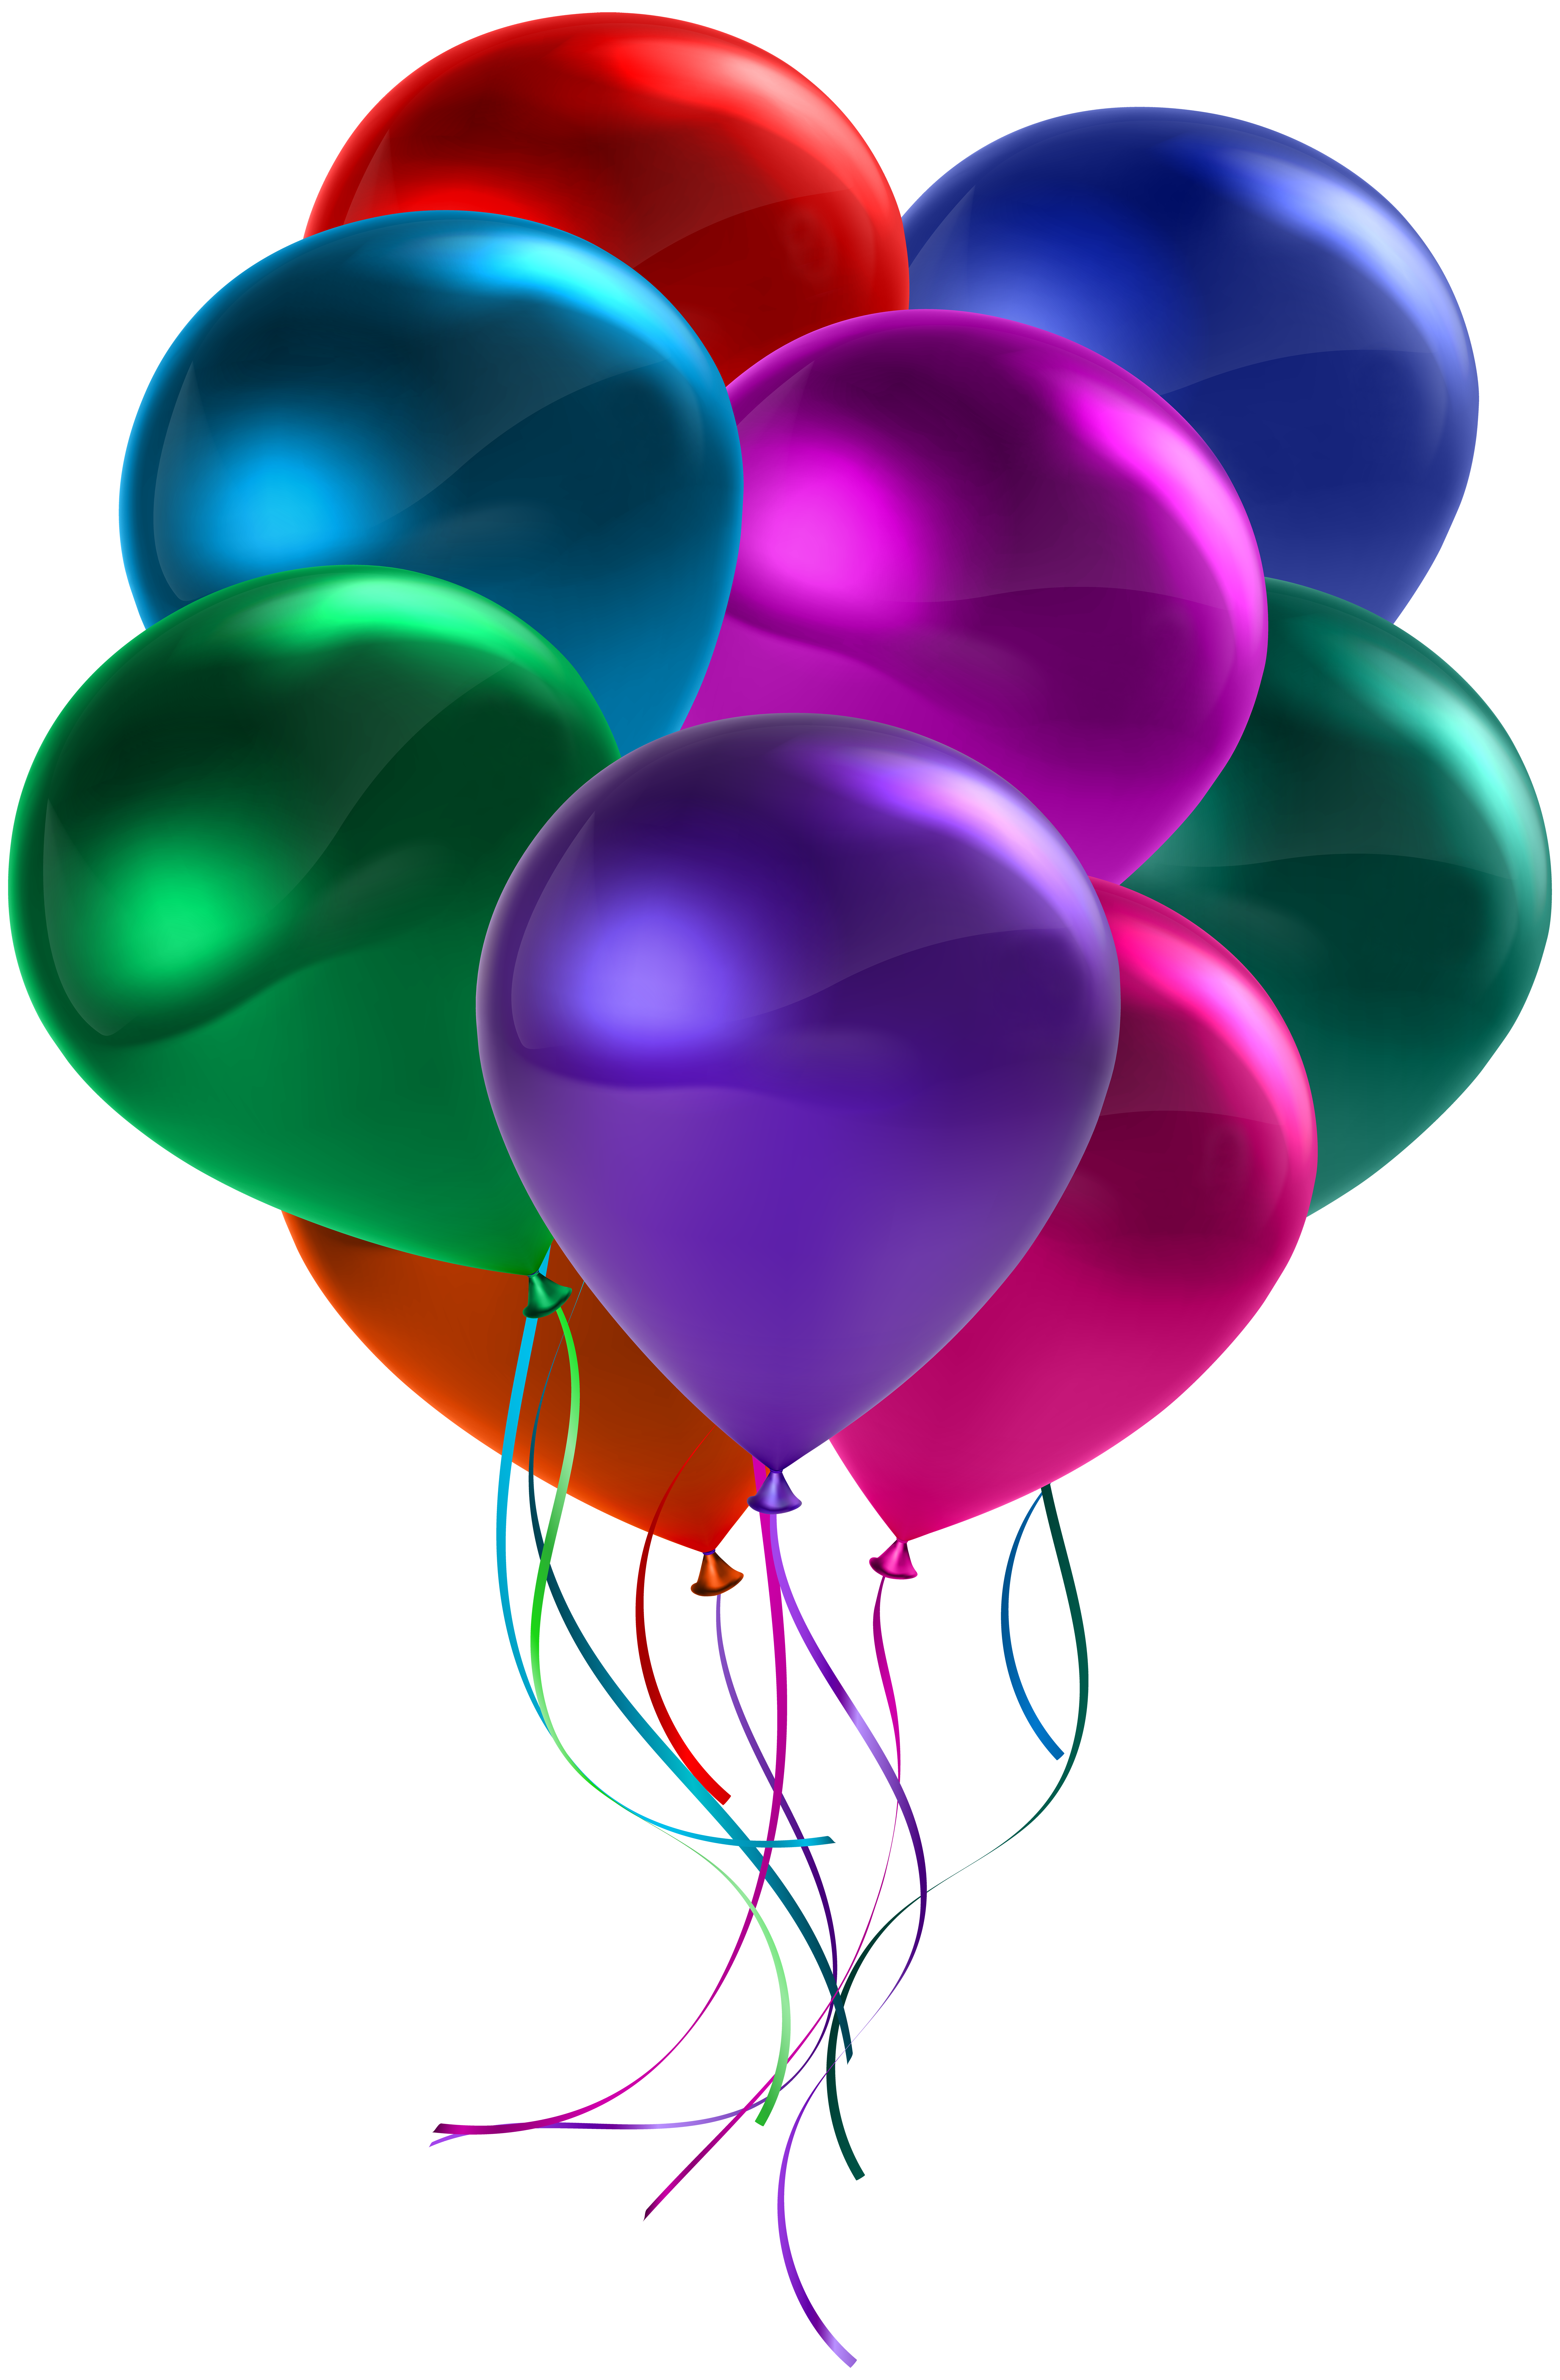 Bunch Of Colorful Balloons Transparent Clip Art Gallery Yopriceville High Quality Images A Happy Birthday Balloons Birthday Balloons Happy Birthday Flower